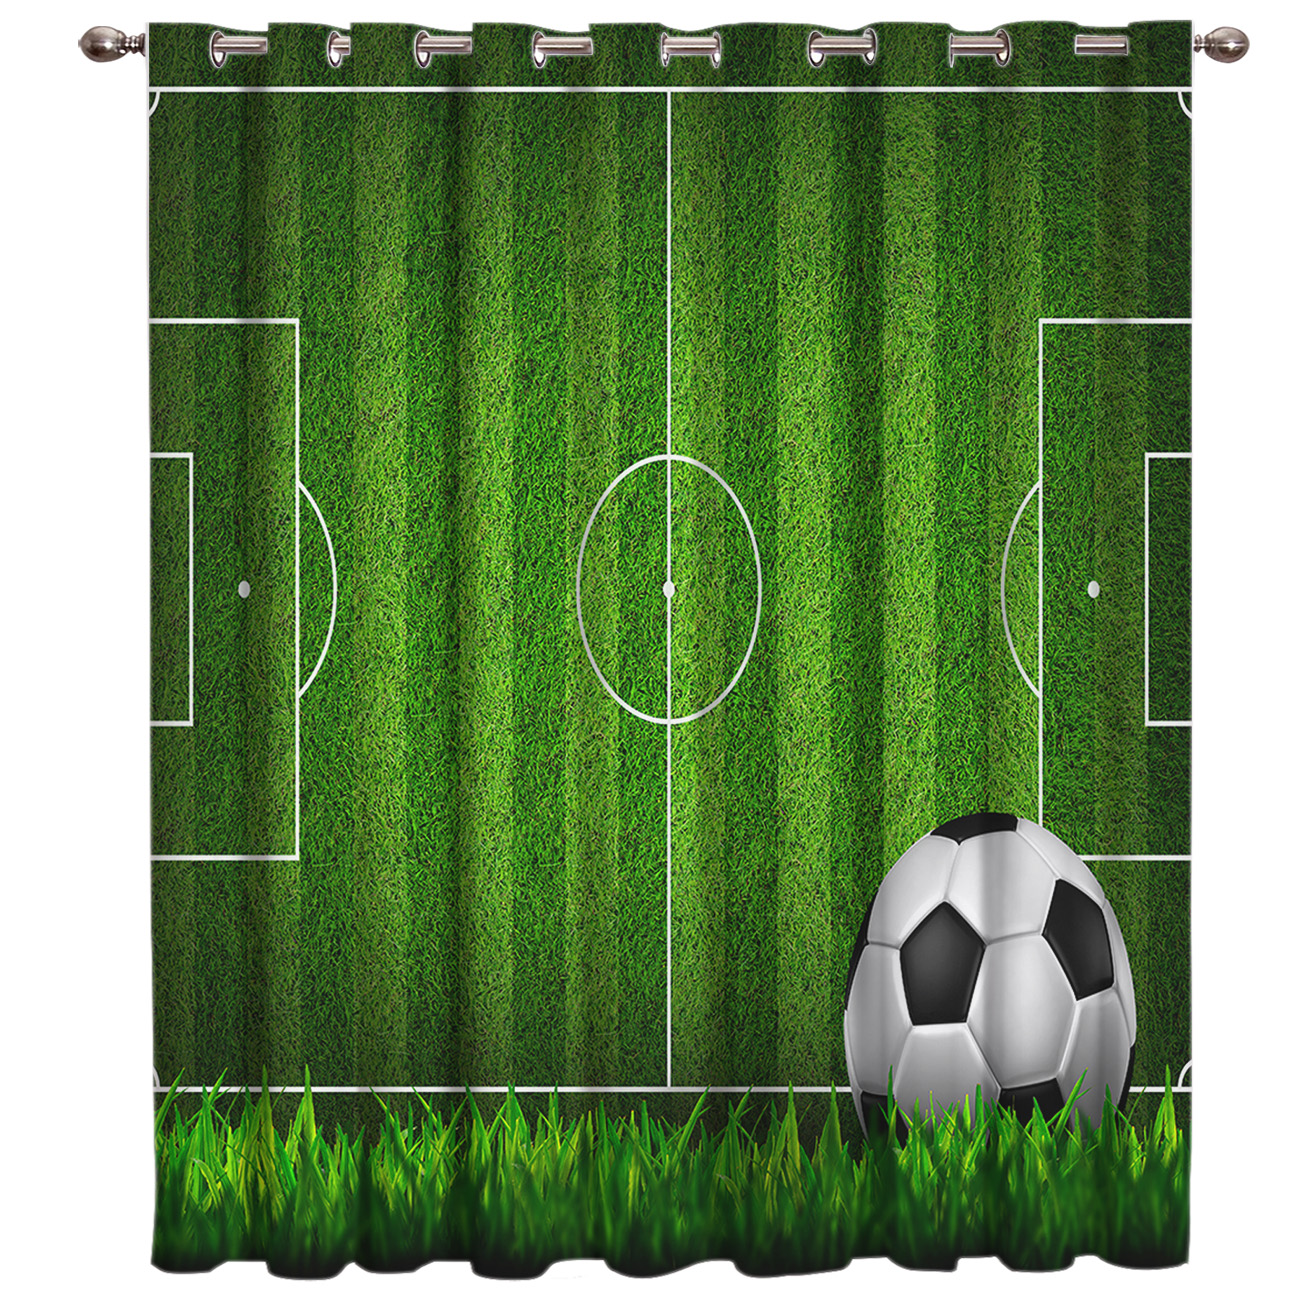 Soccer Football Game Competition In Gymnasium 3D Window Curtains For Living Room Bedroom Kitchen Cortinas Para Sala De Estar